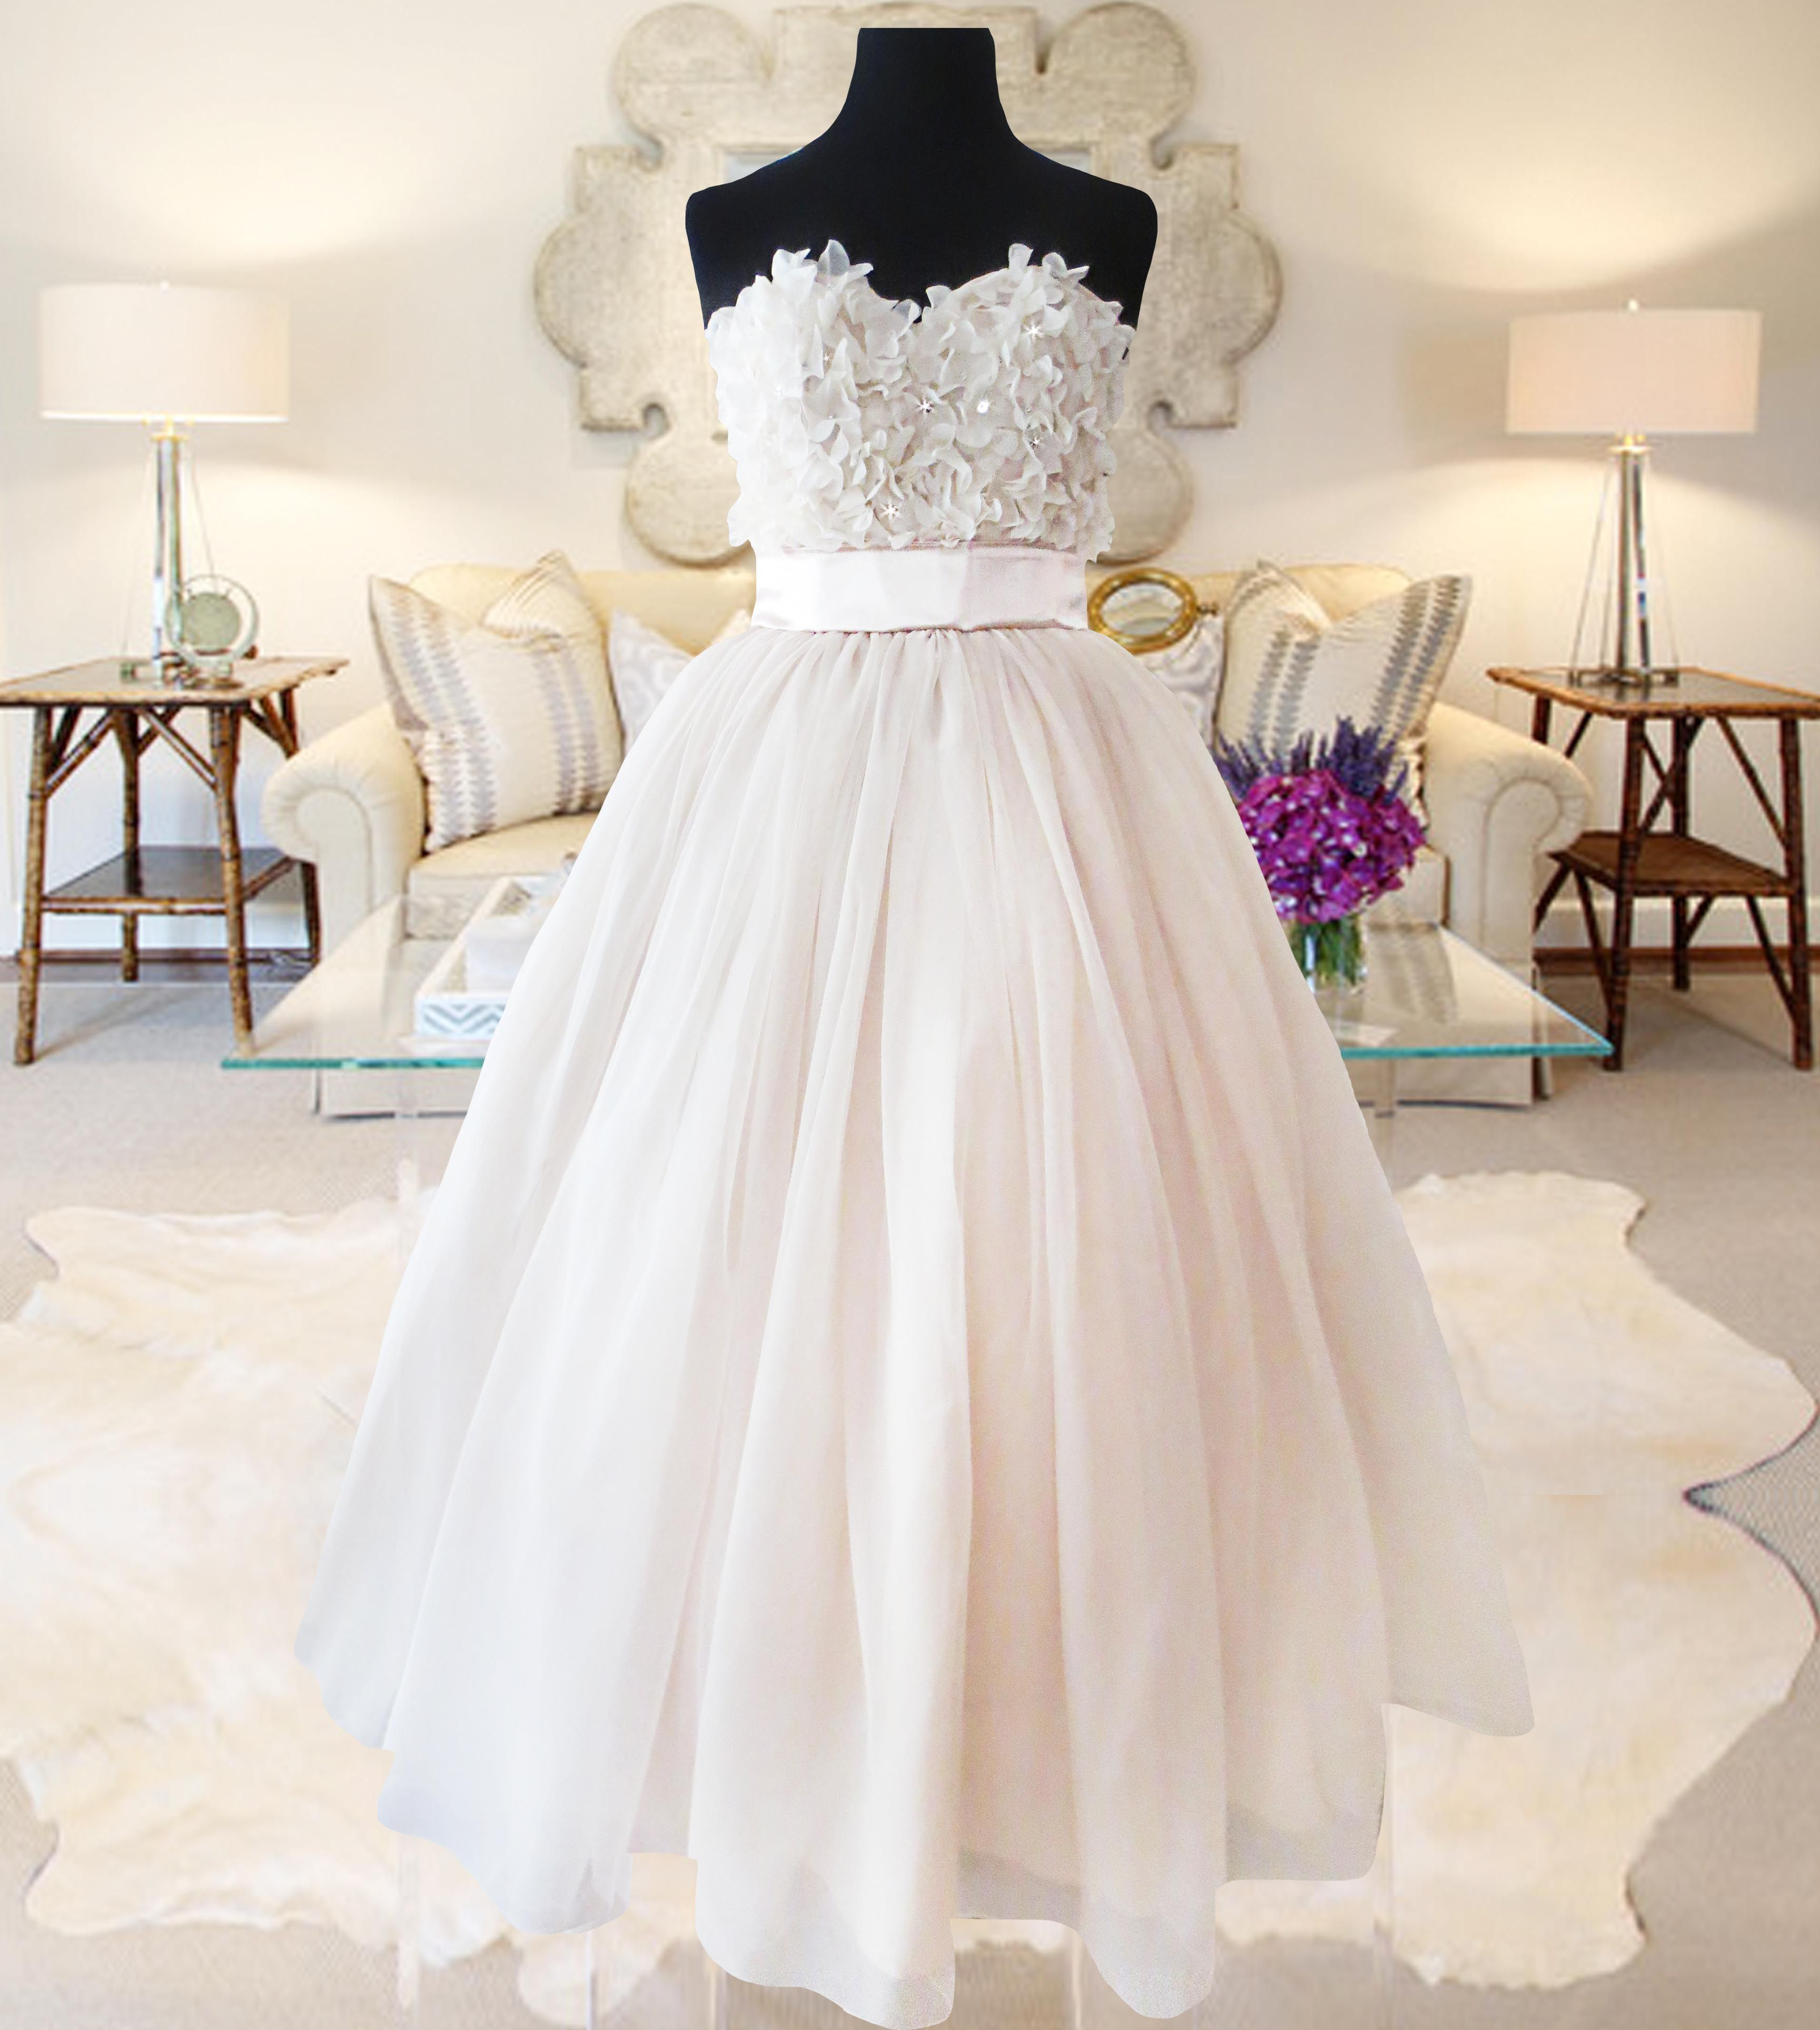 cream beige white ball gown for rent Php3,000 www